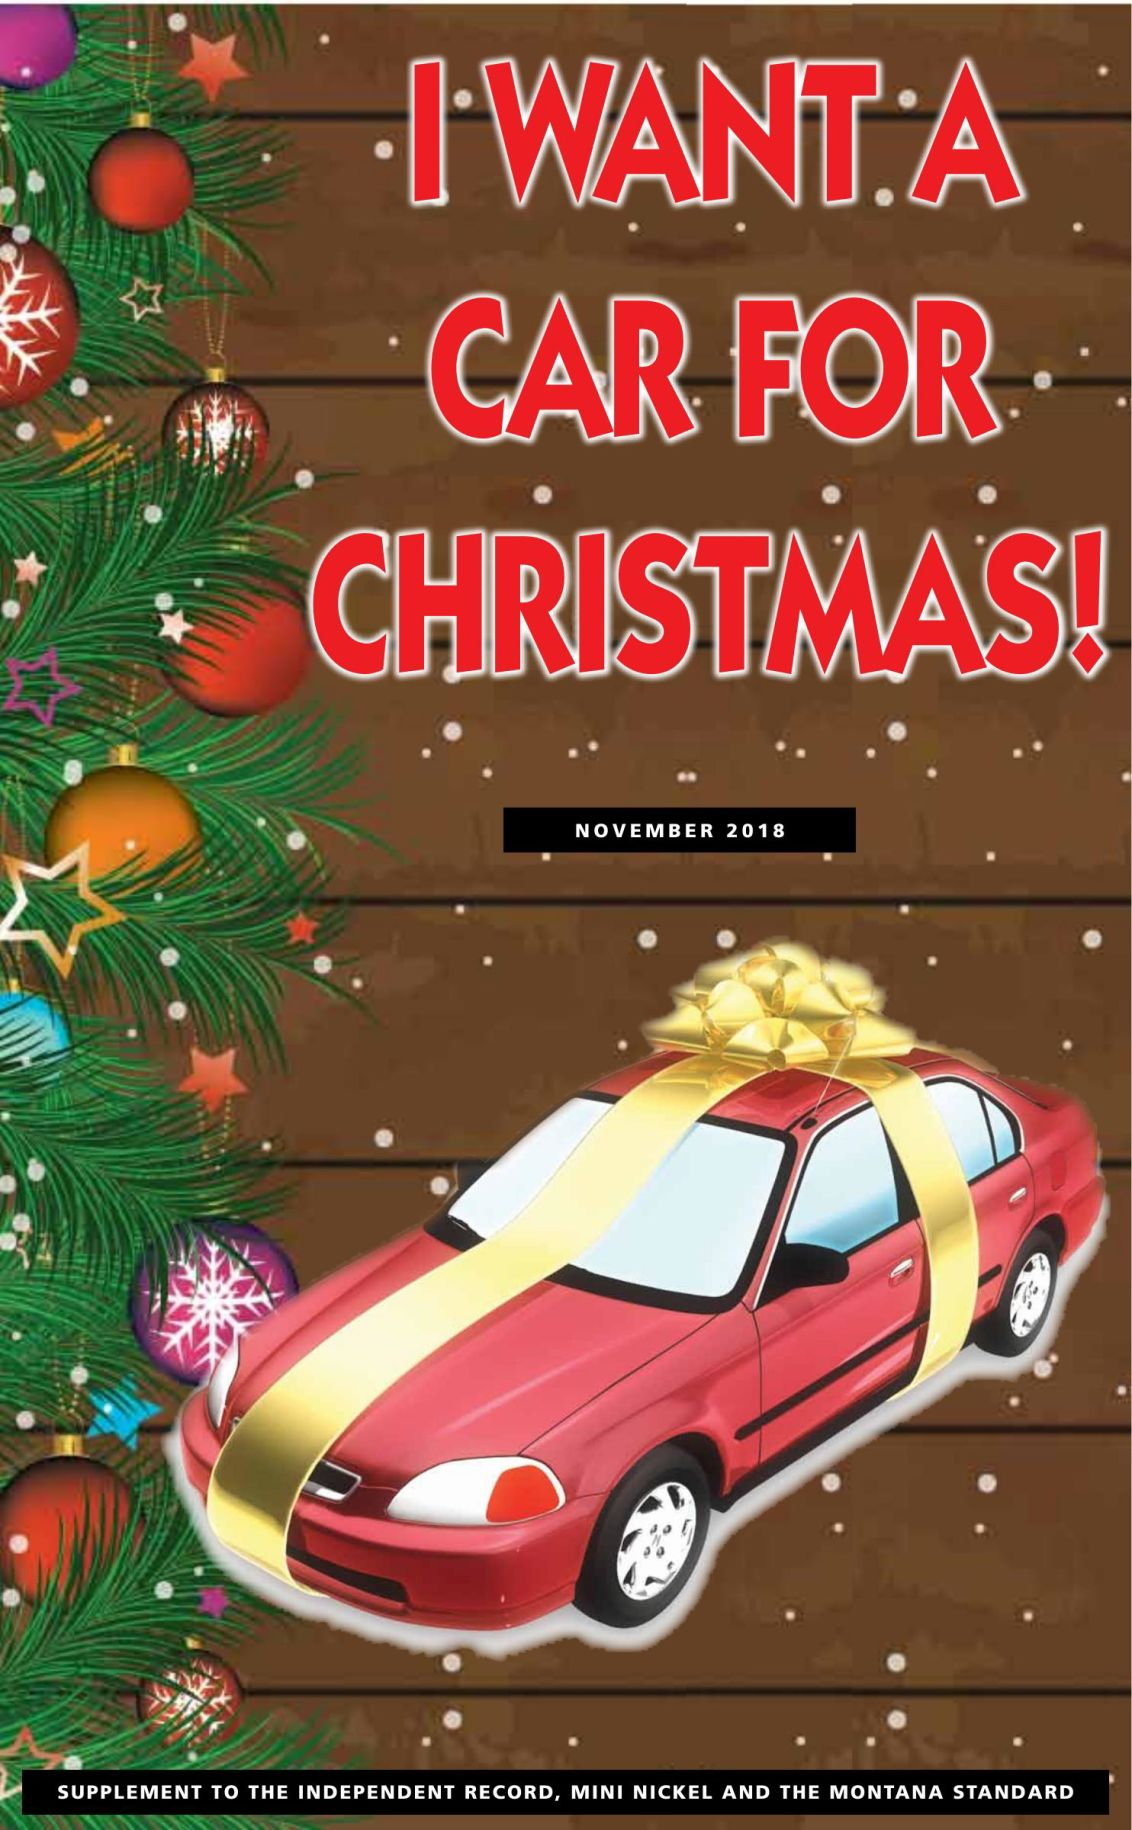 I want a car for Christmas - Regional Auto Guide